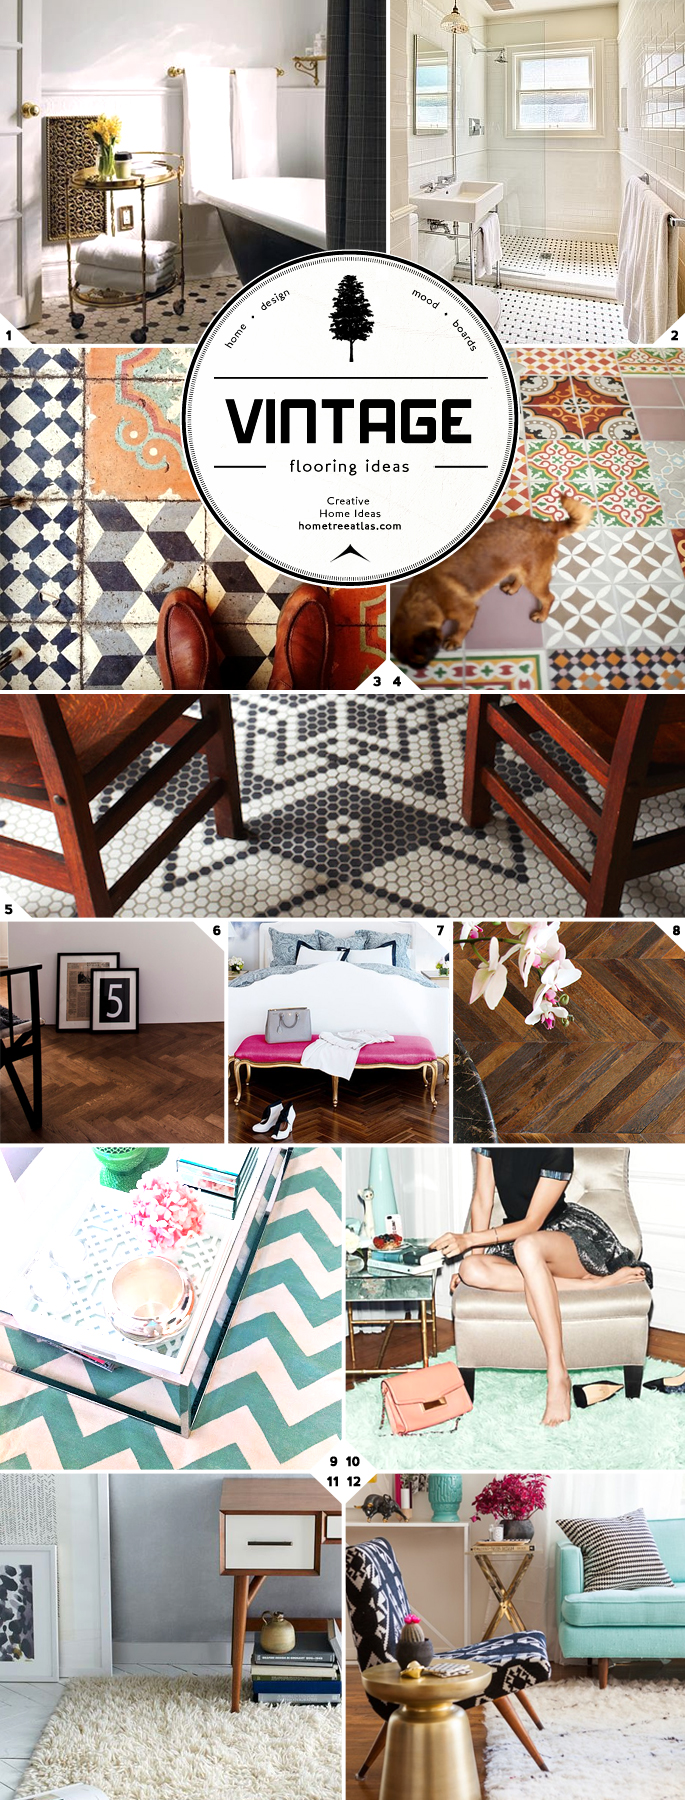 Style Guide: Vintage Flooring Ideas and Designs  Home Tree Atlas